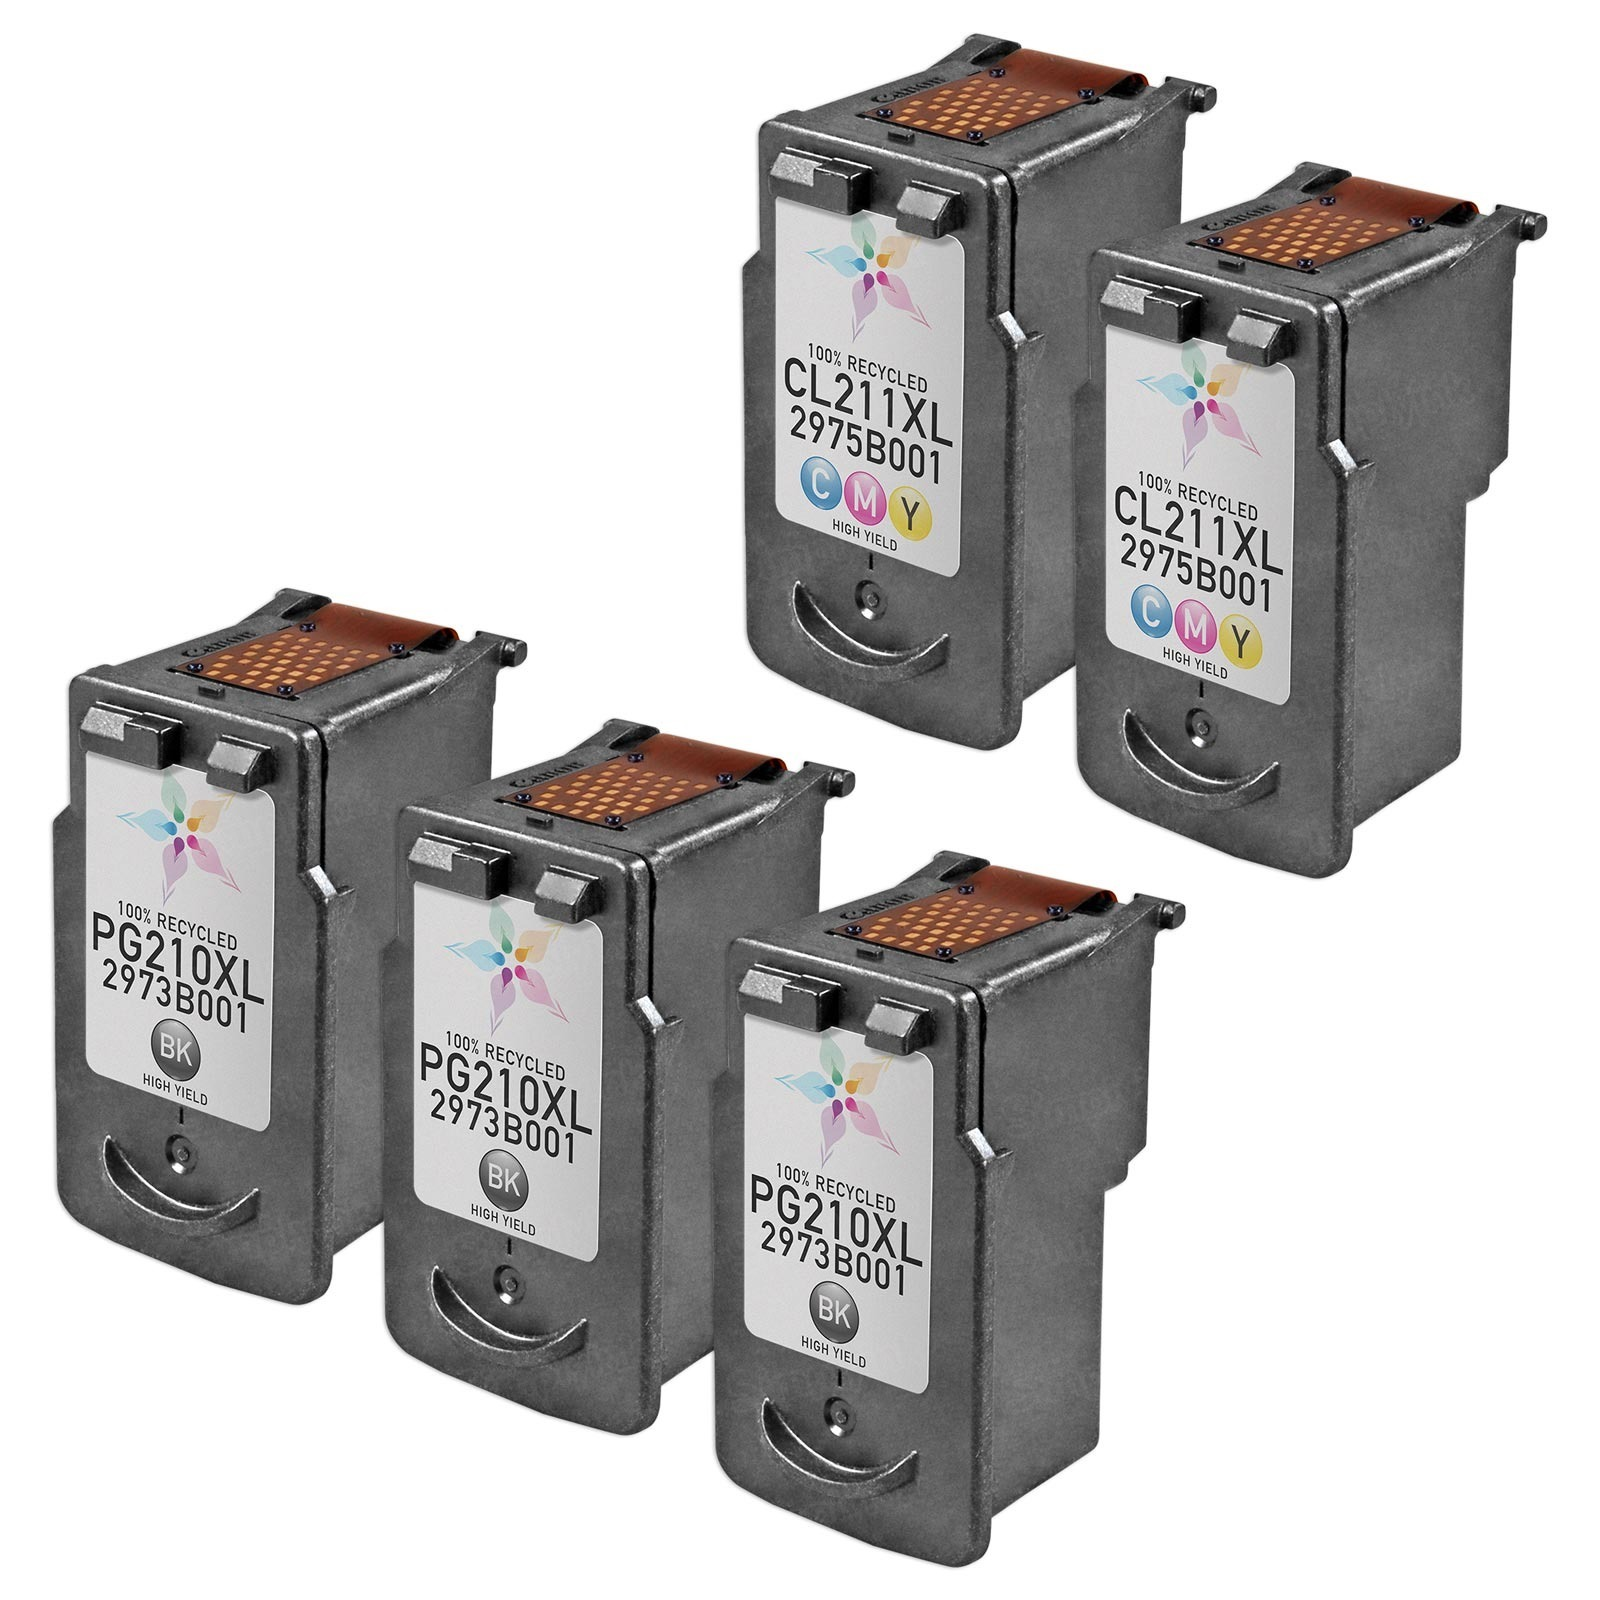 Inkjet Supplies for Canon Printers - Remanufactured Bulk Set of 5 Ink Cartridges 3 Black Canon PG-210XL (2973B001AA) and 2 Color Canon CL-211XL (2975B001AA)